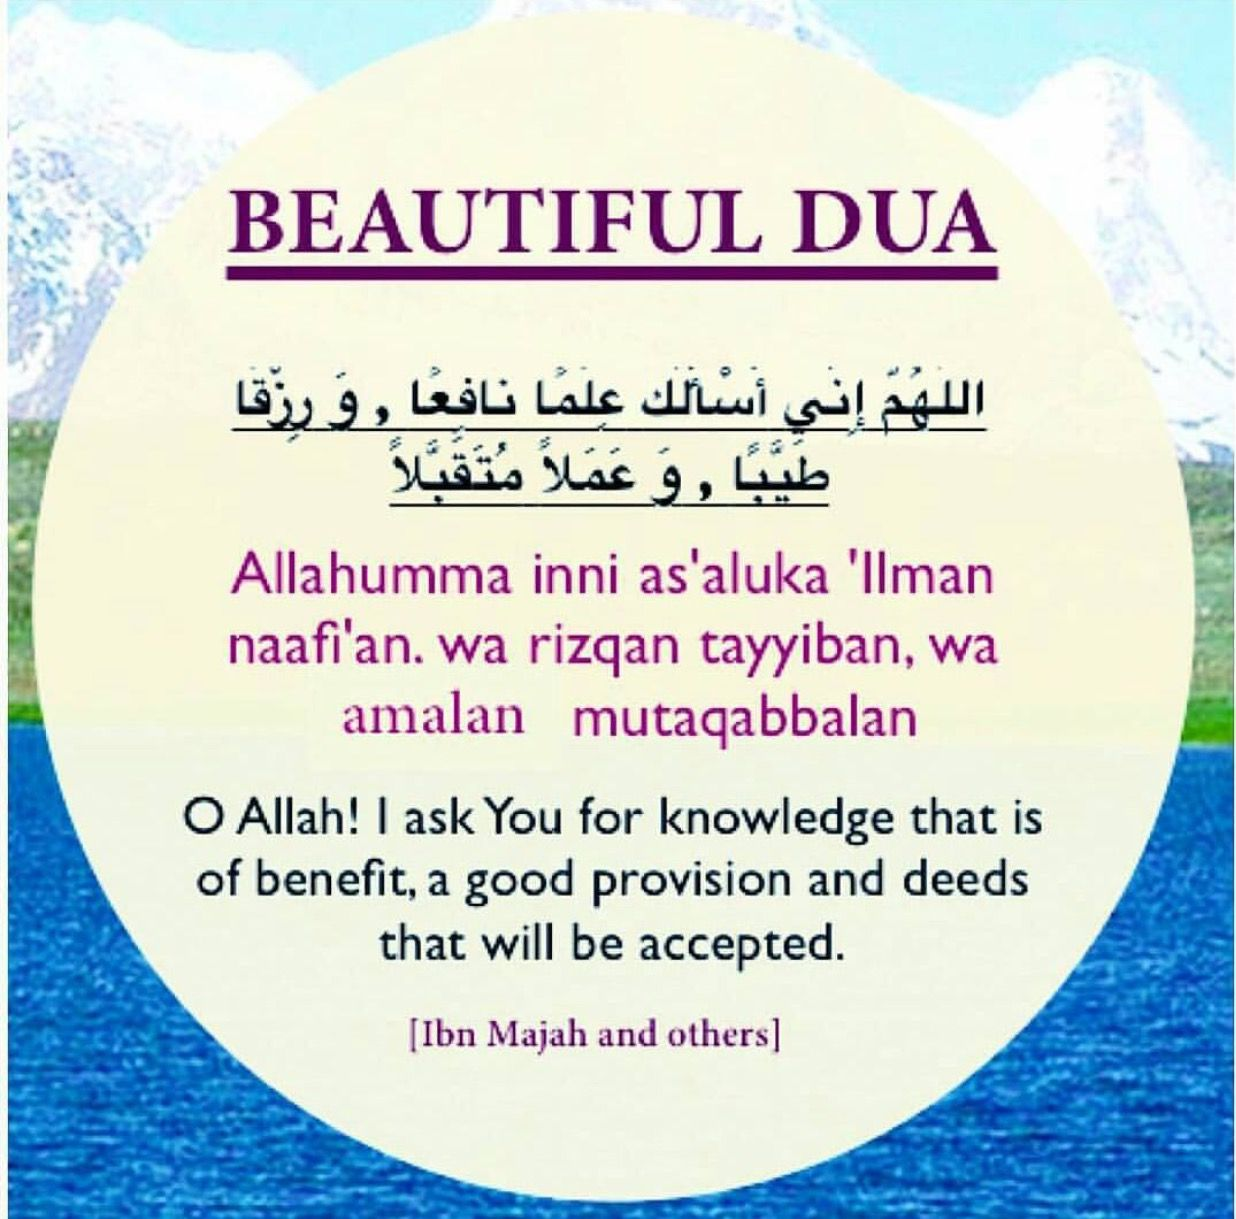 dua for health and wealth